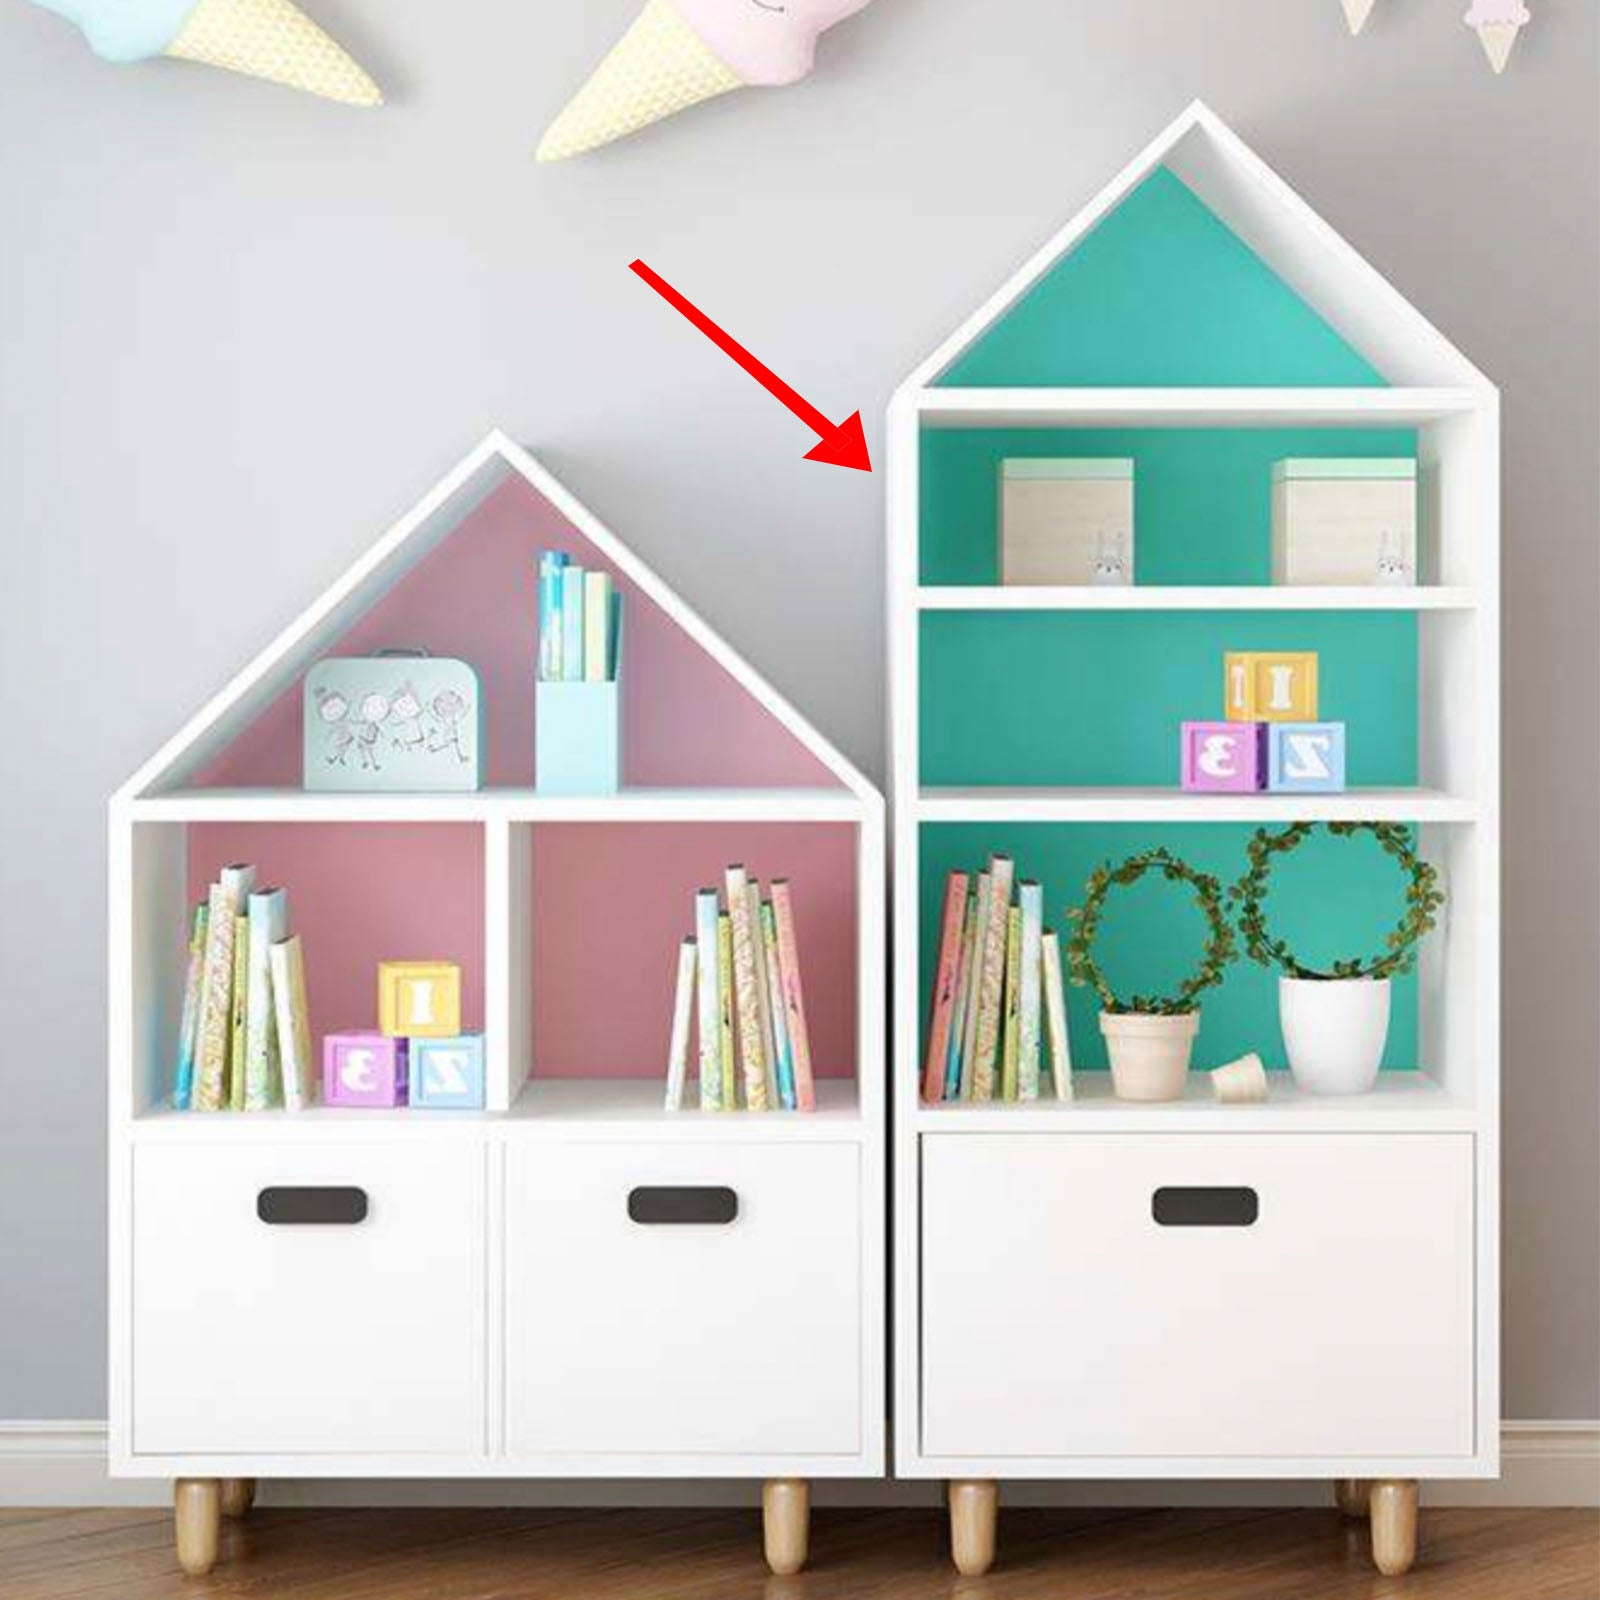 Pre-Order 70 days delivery Kids Shelf  HY-S002 -  رف الاطفال - Shop Online Furniture and Home Decor Store in Dubai, UAE at ebarza